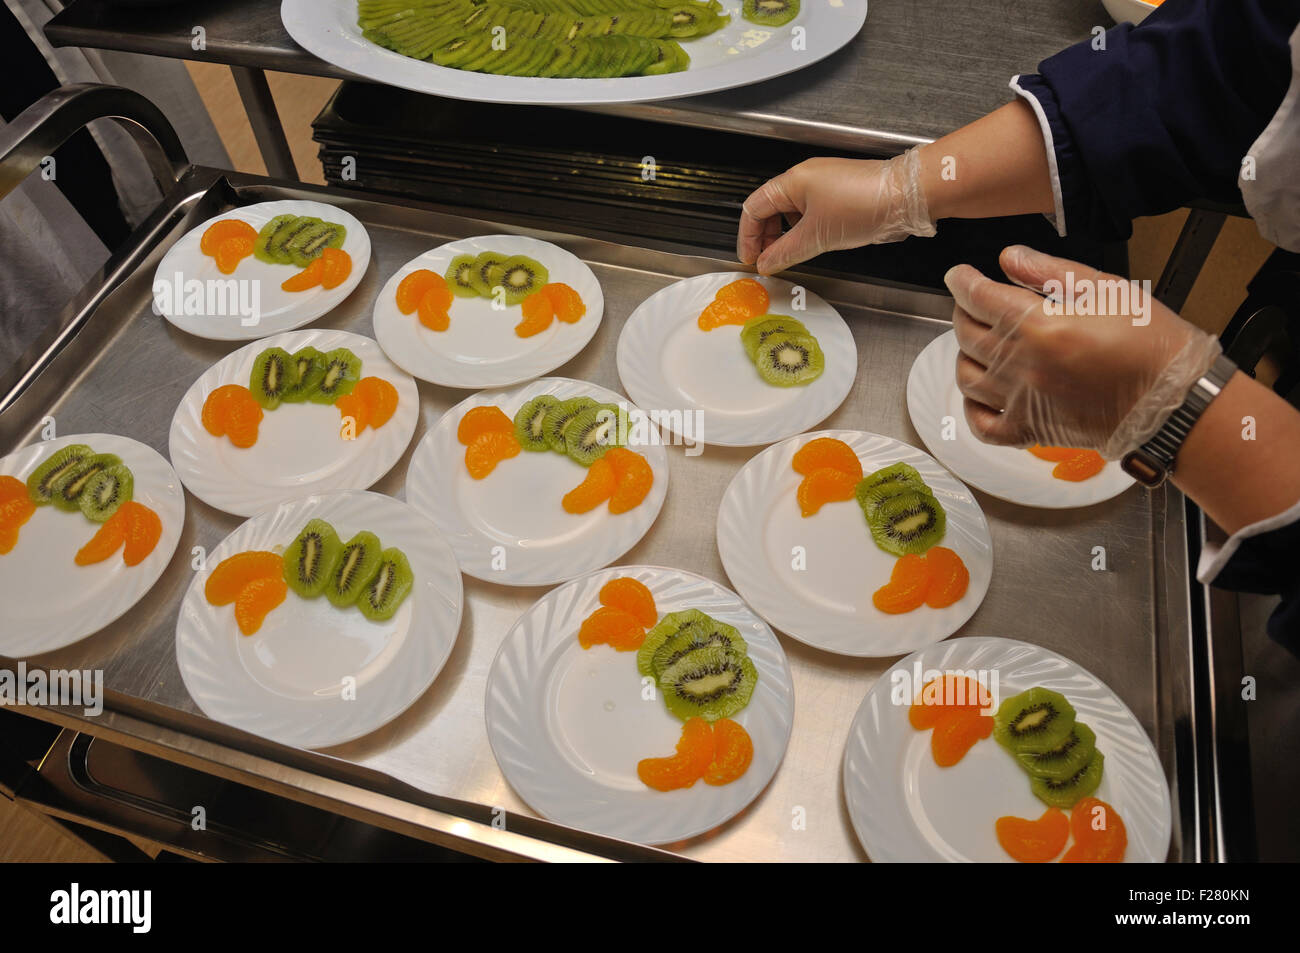 A caterer prepares plates of dessert with slices of kiwi fruit and orange. - Stock Image